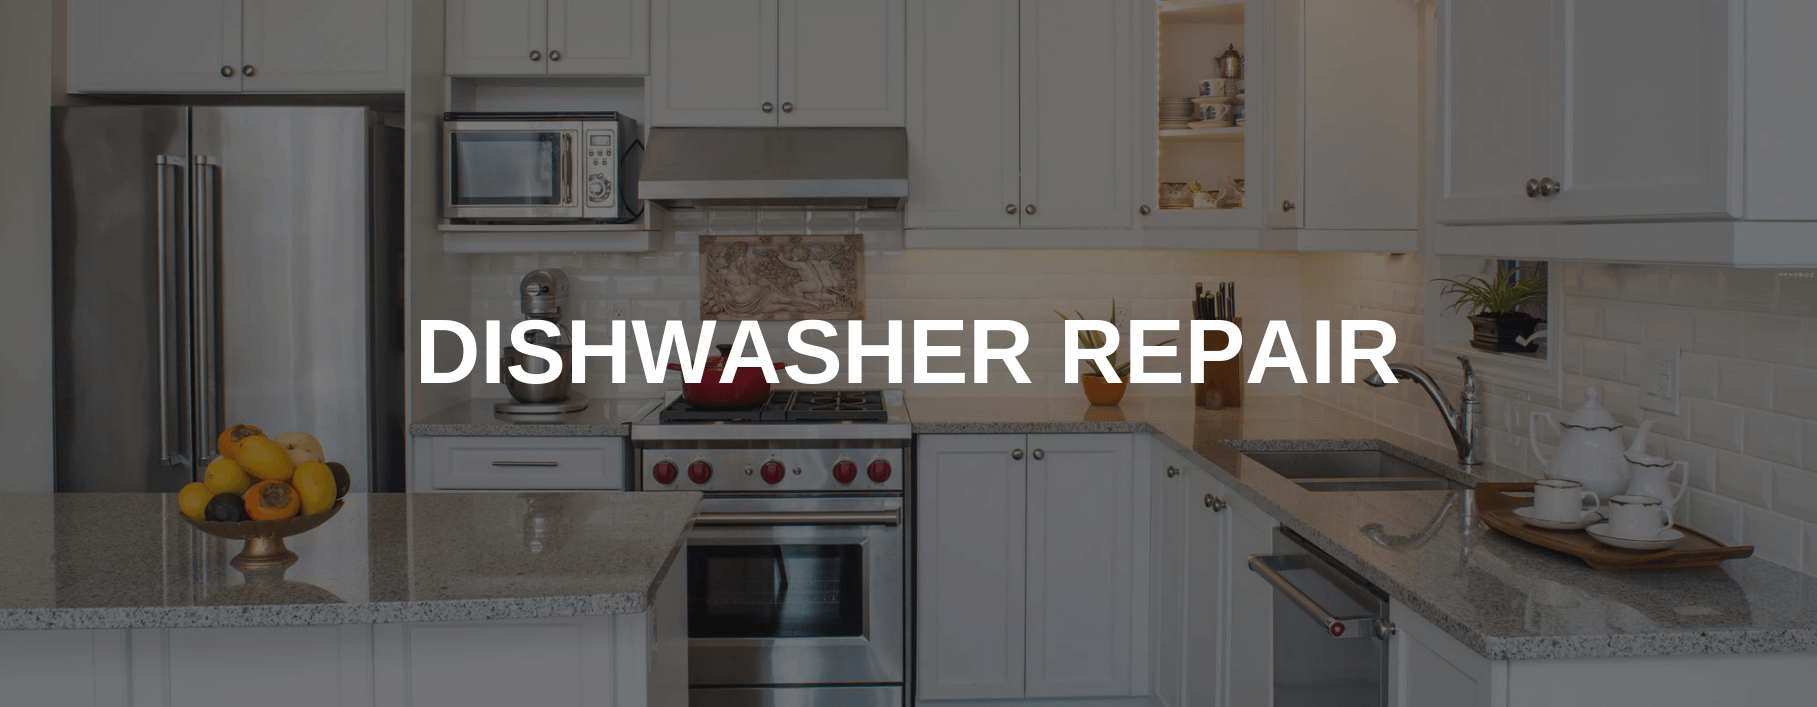 dishwasher repair palmdale